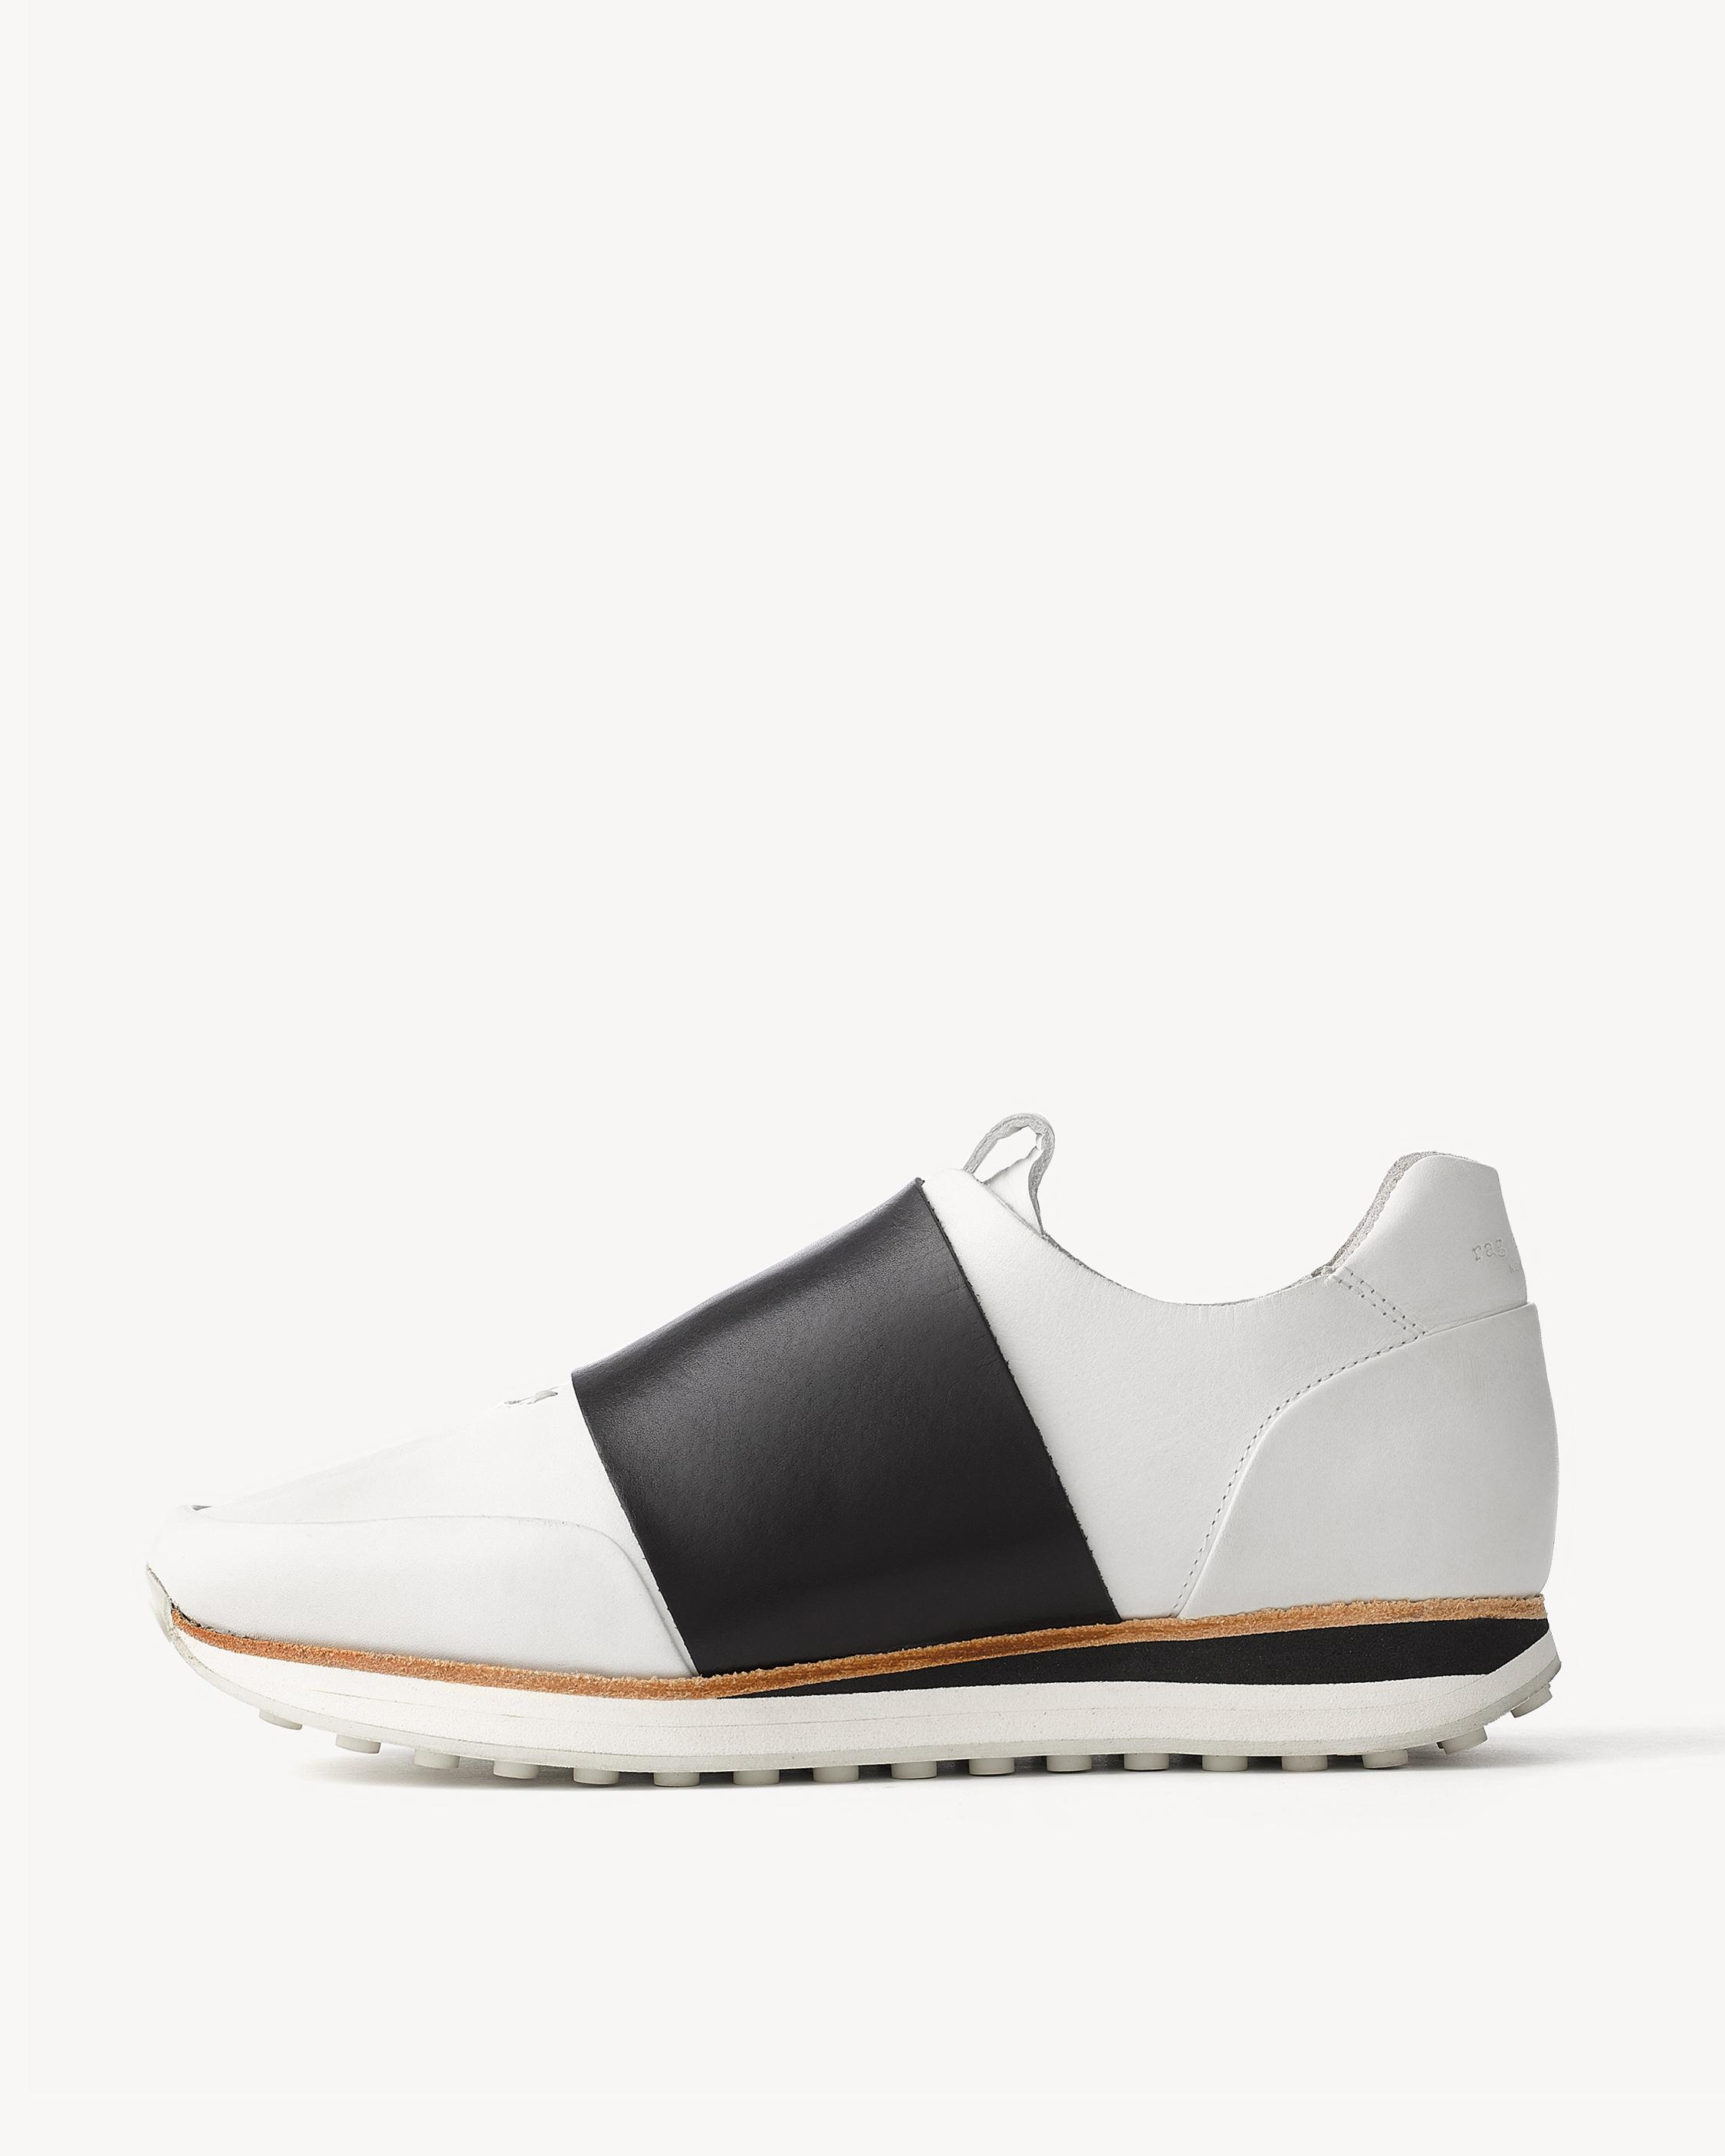 White and Black Dylan Elastic Runner Sneakers Rag & Bone Sale 2018 Outlet With Mastercard Under Sale Online Fashionable Cheap Price ctIwBB4W